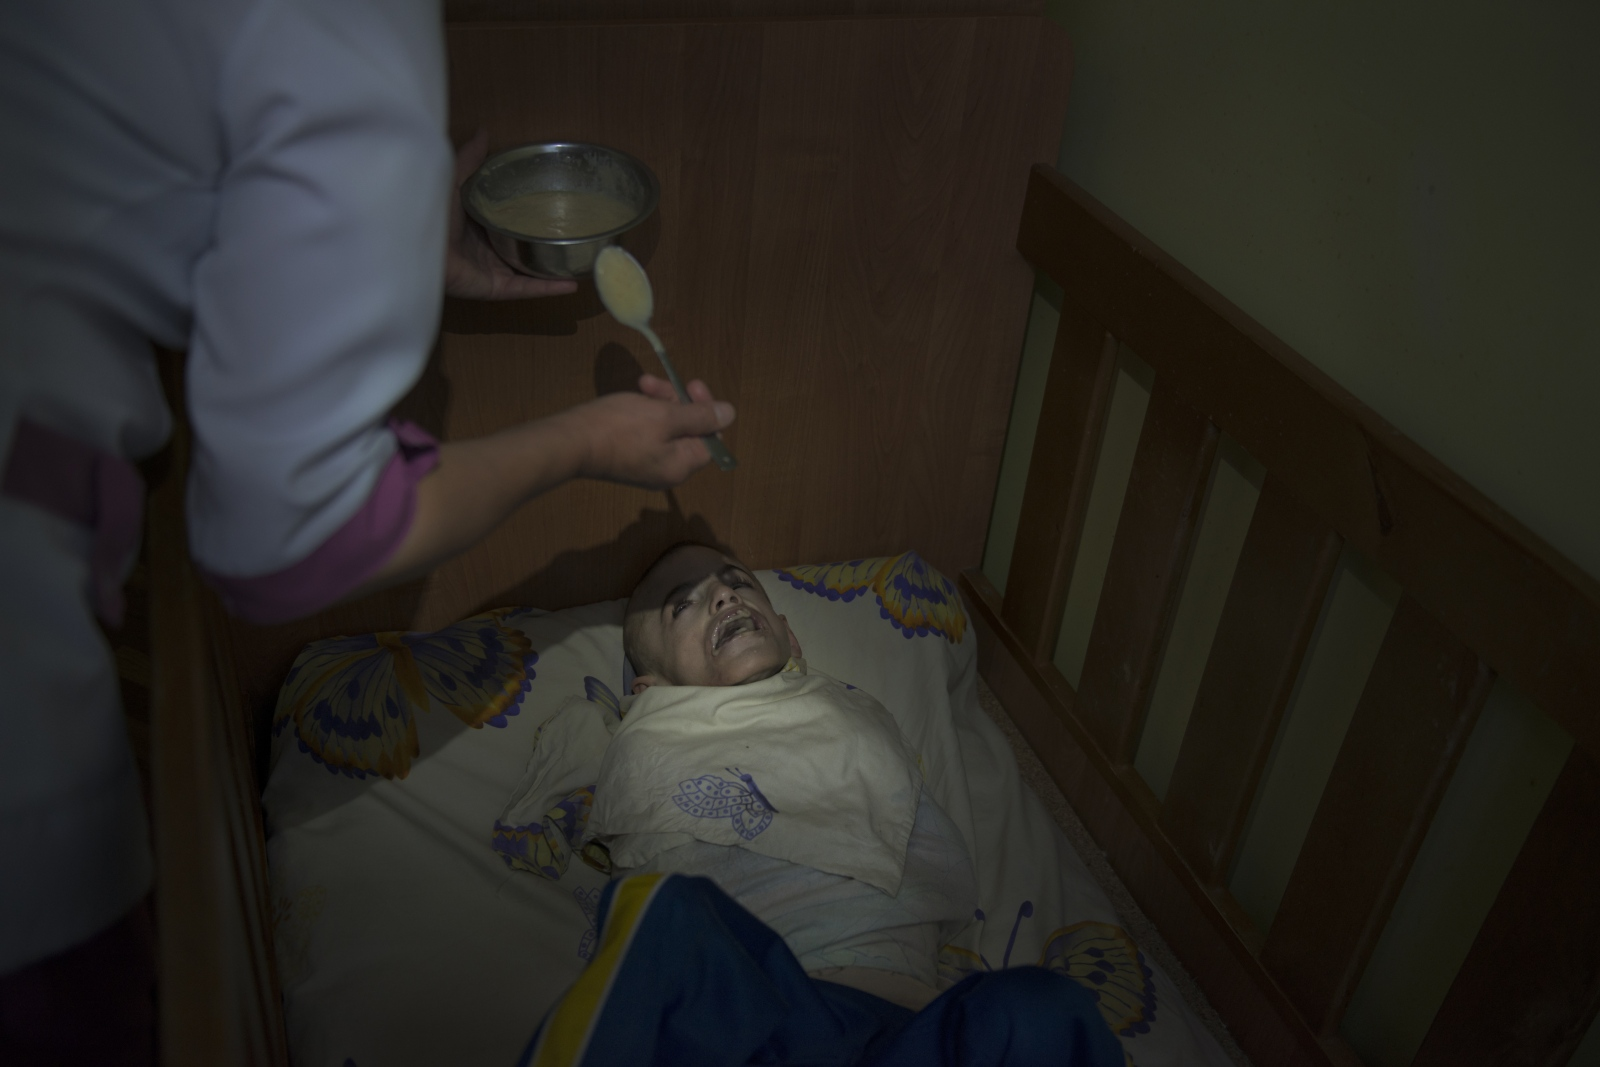 Nurses often get frustrated feeding children like Dima who must be restrained beacuse of constant thrashing around and self harming behavior. They often feed him hastily and as a result he is undernourished.